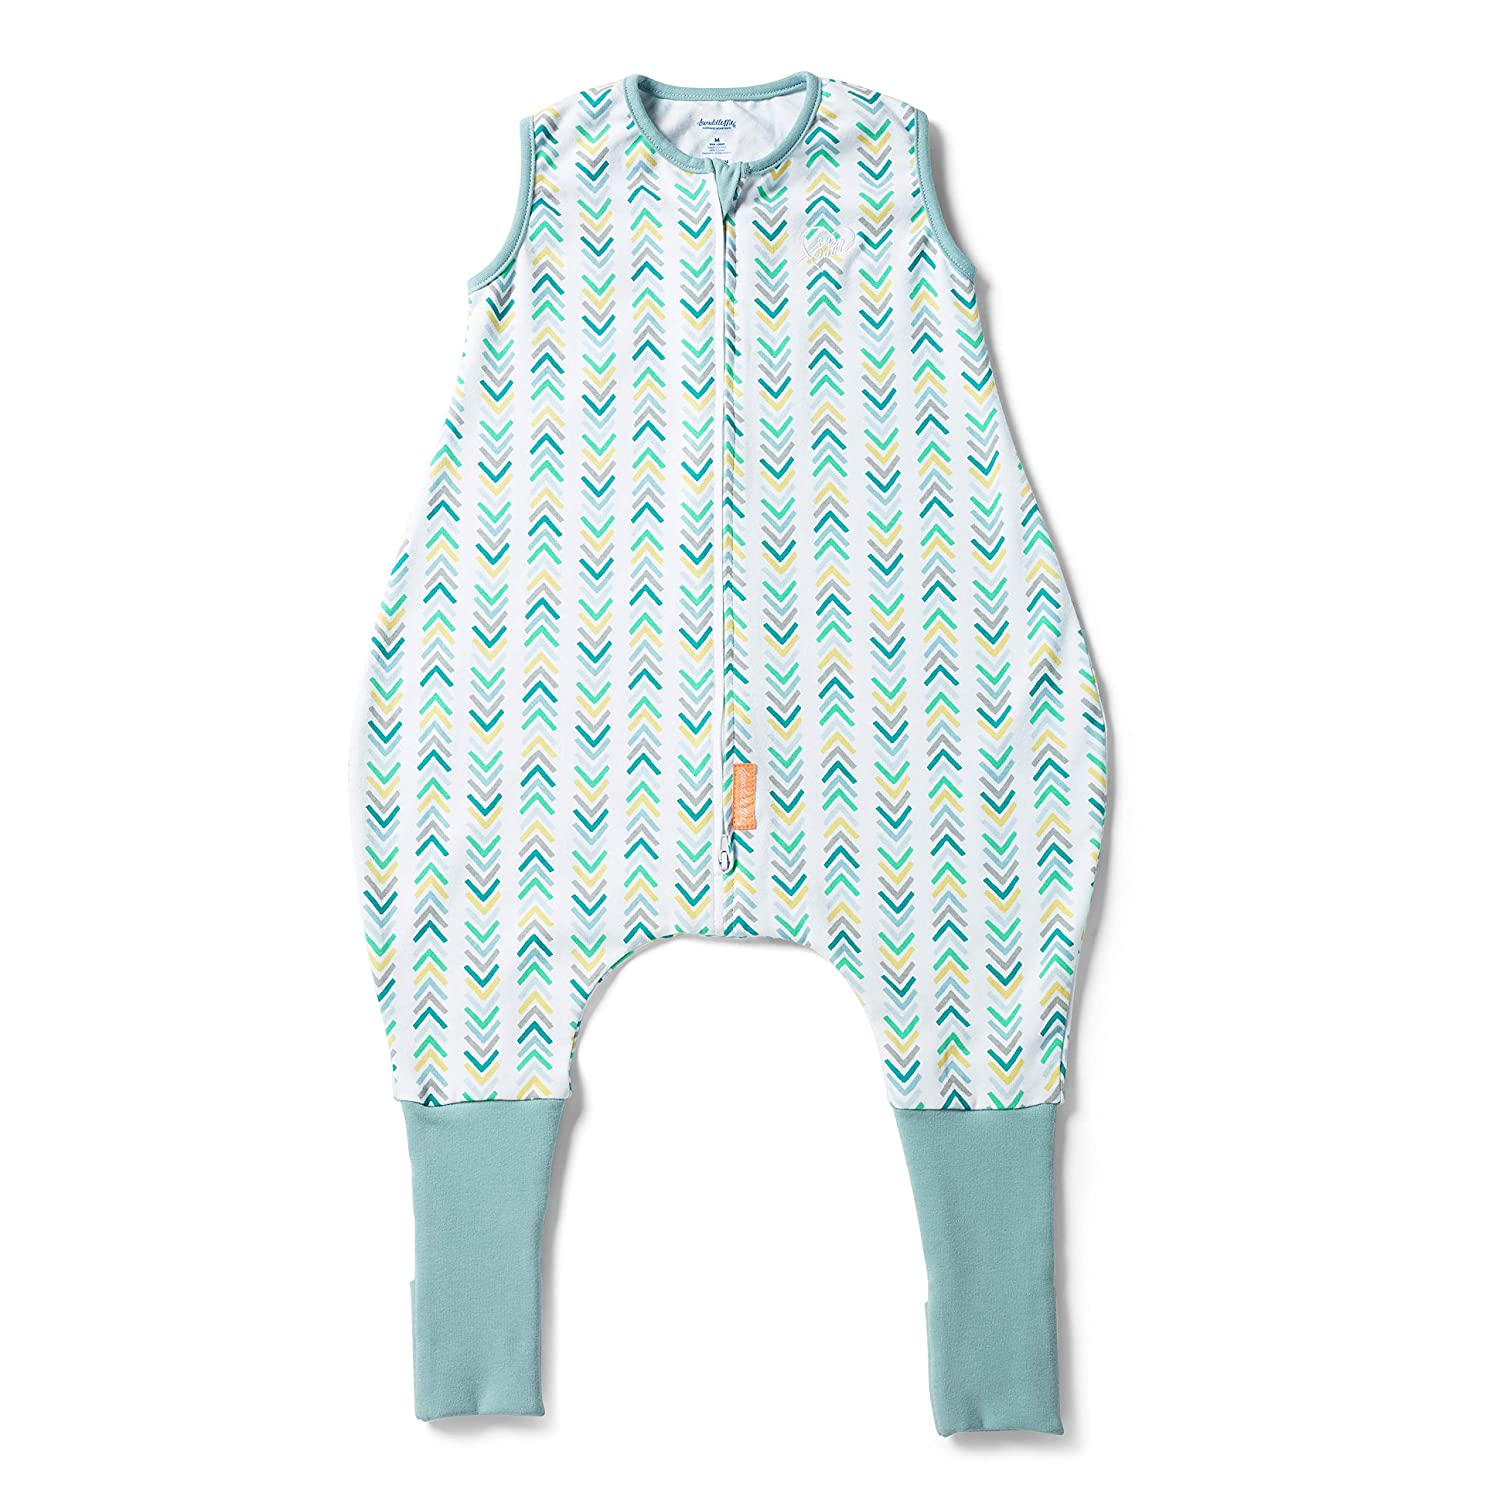 SwaddleMe First Steps Sleeper - Medium, 1 Pack, Points & Peaks, 12-18 Months (58613)